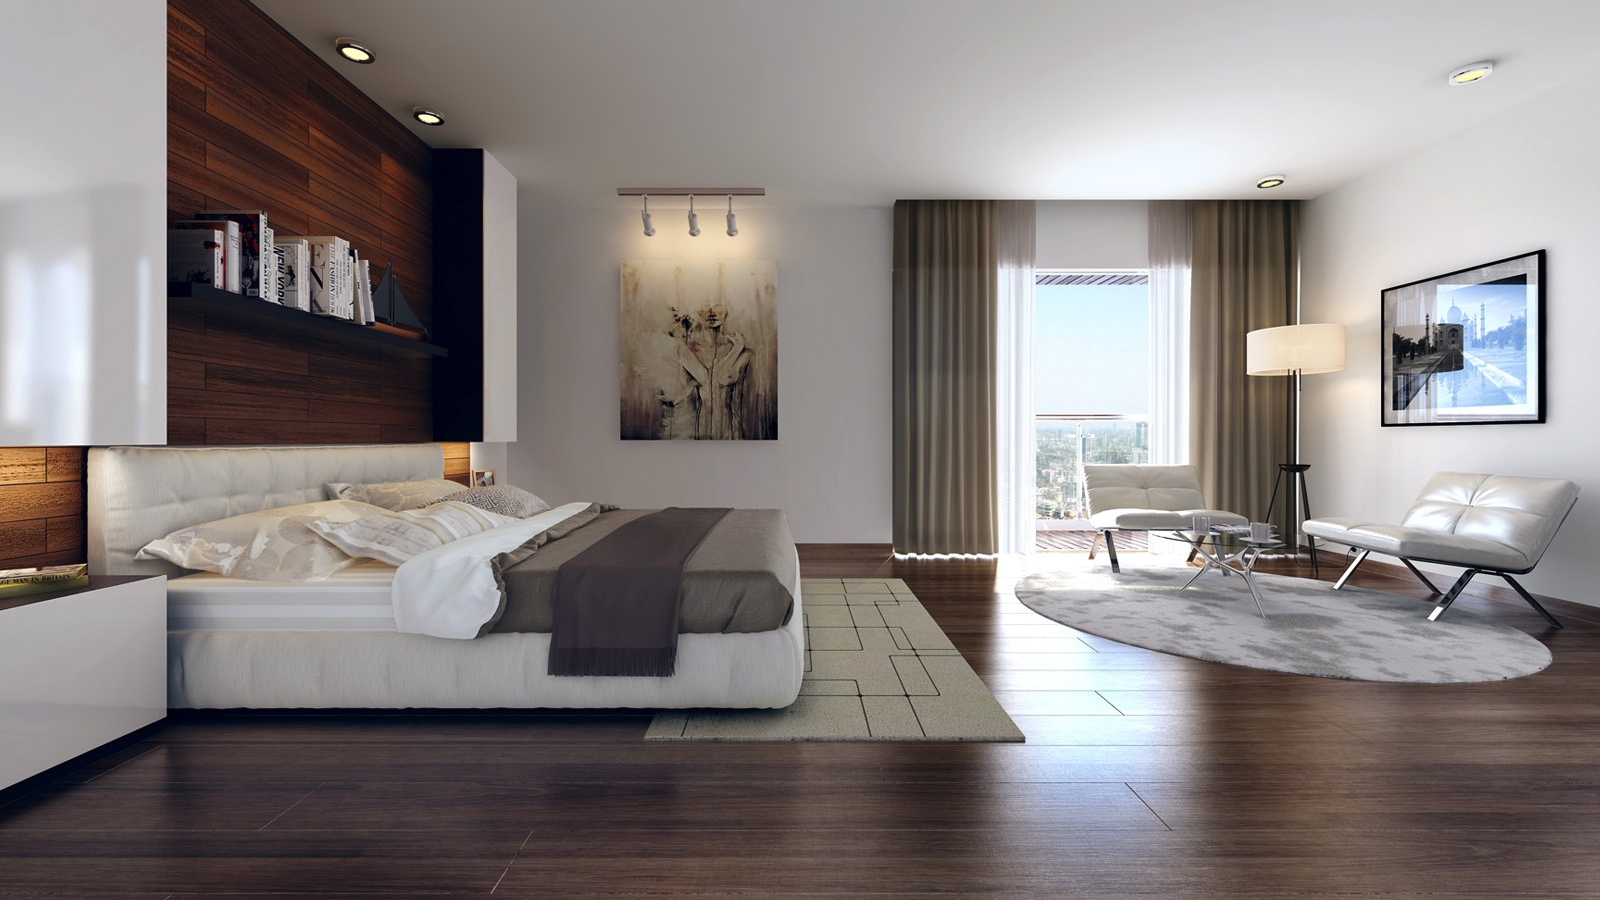 Modern bedroom design ideas for rooms of any size for Bedroom flooring options